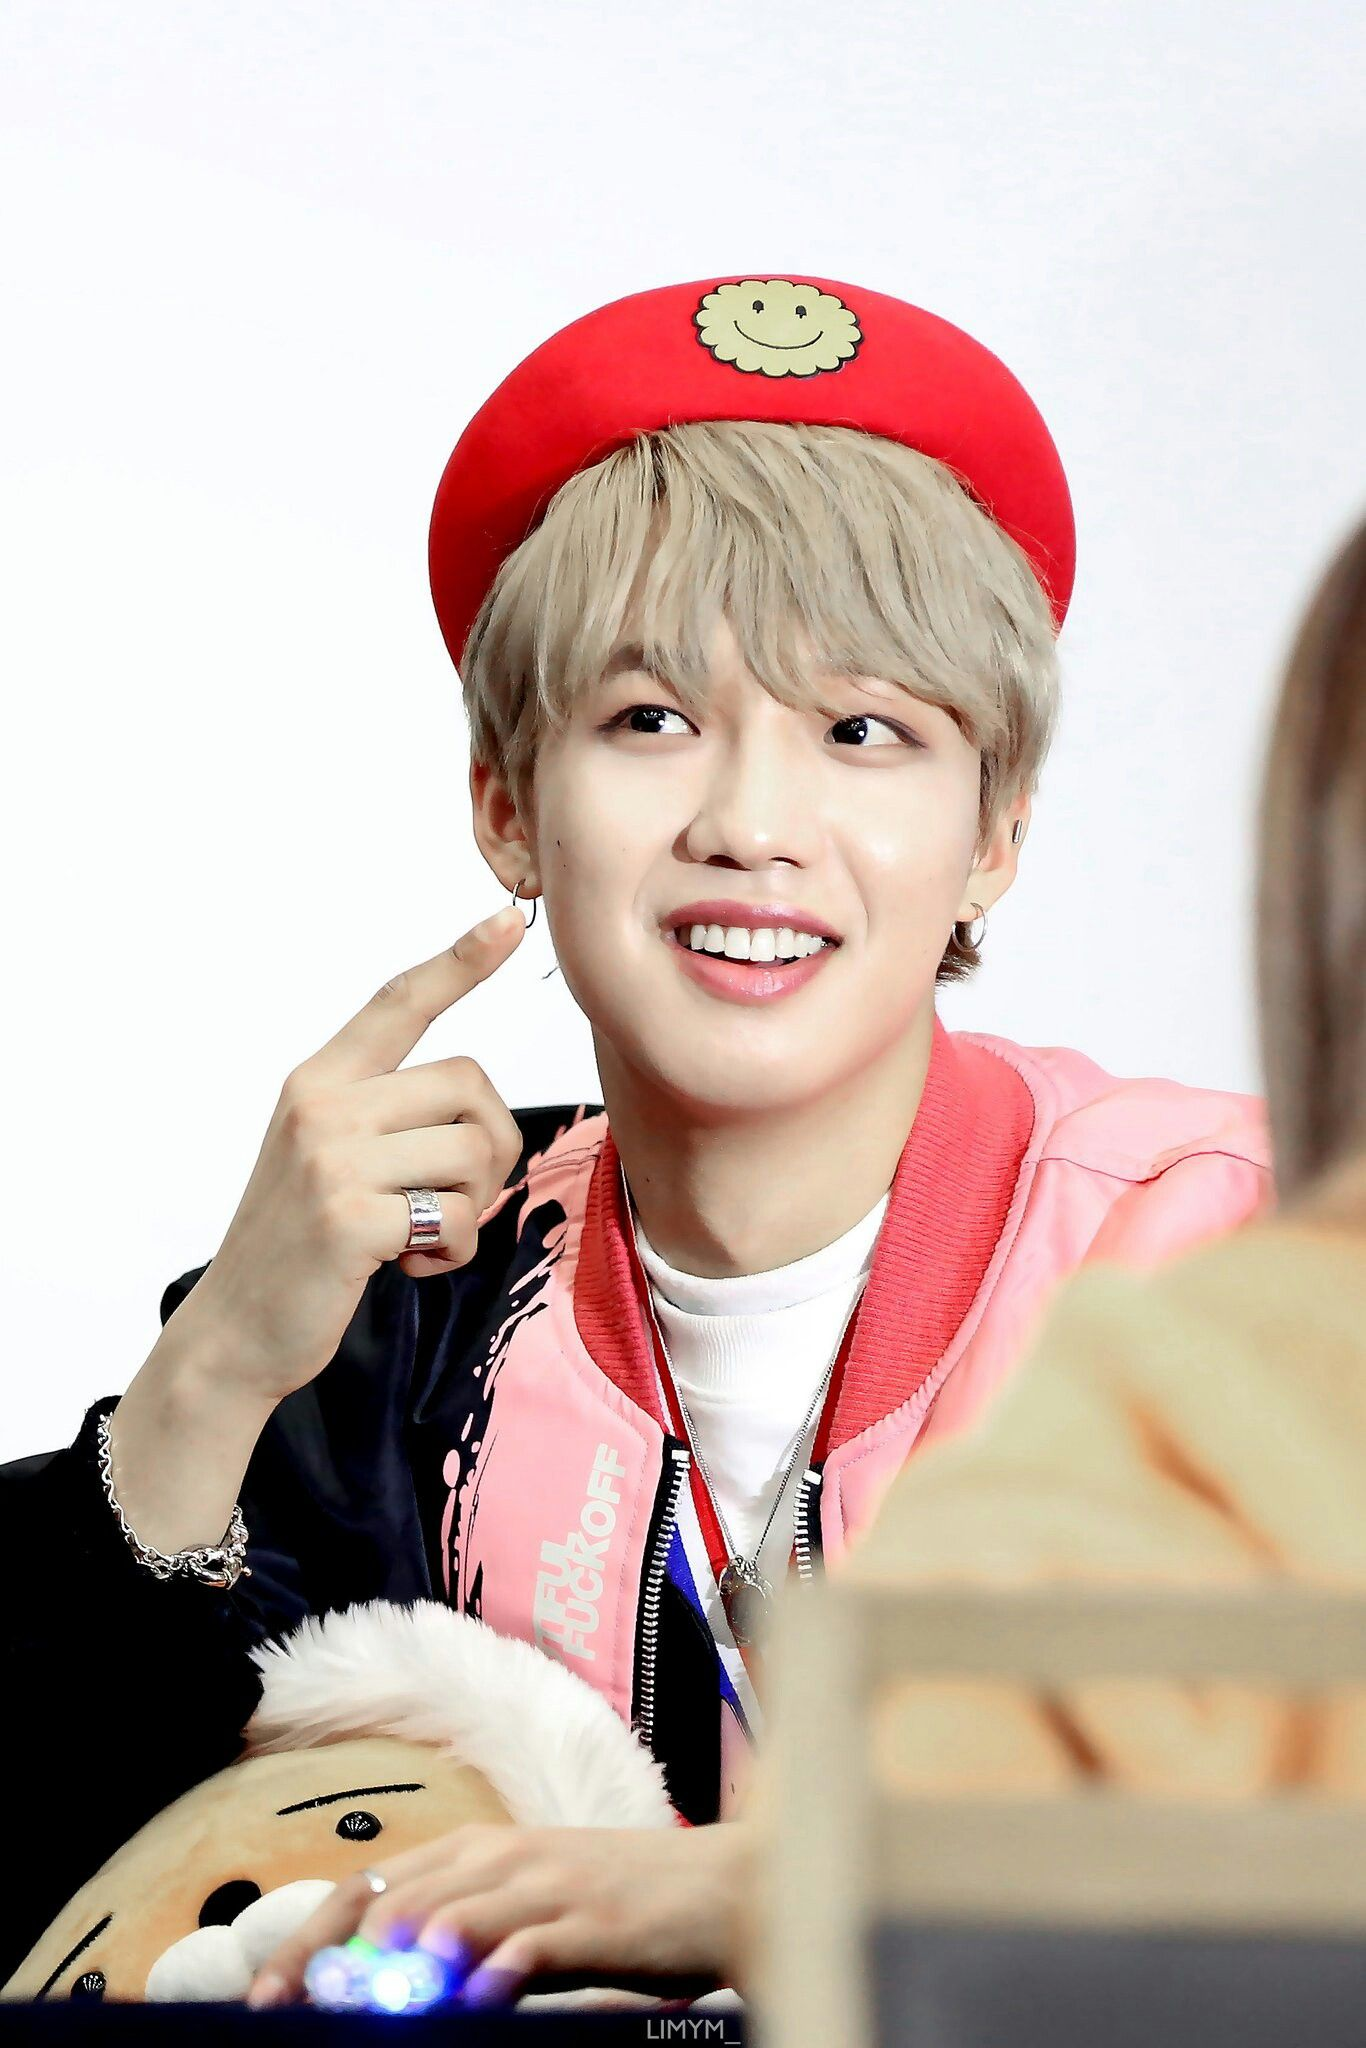 Lim Youngmin - MATCH UP Fansign - 180120 Cre: LIMYM